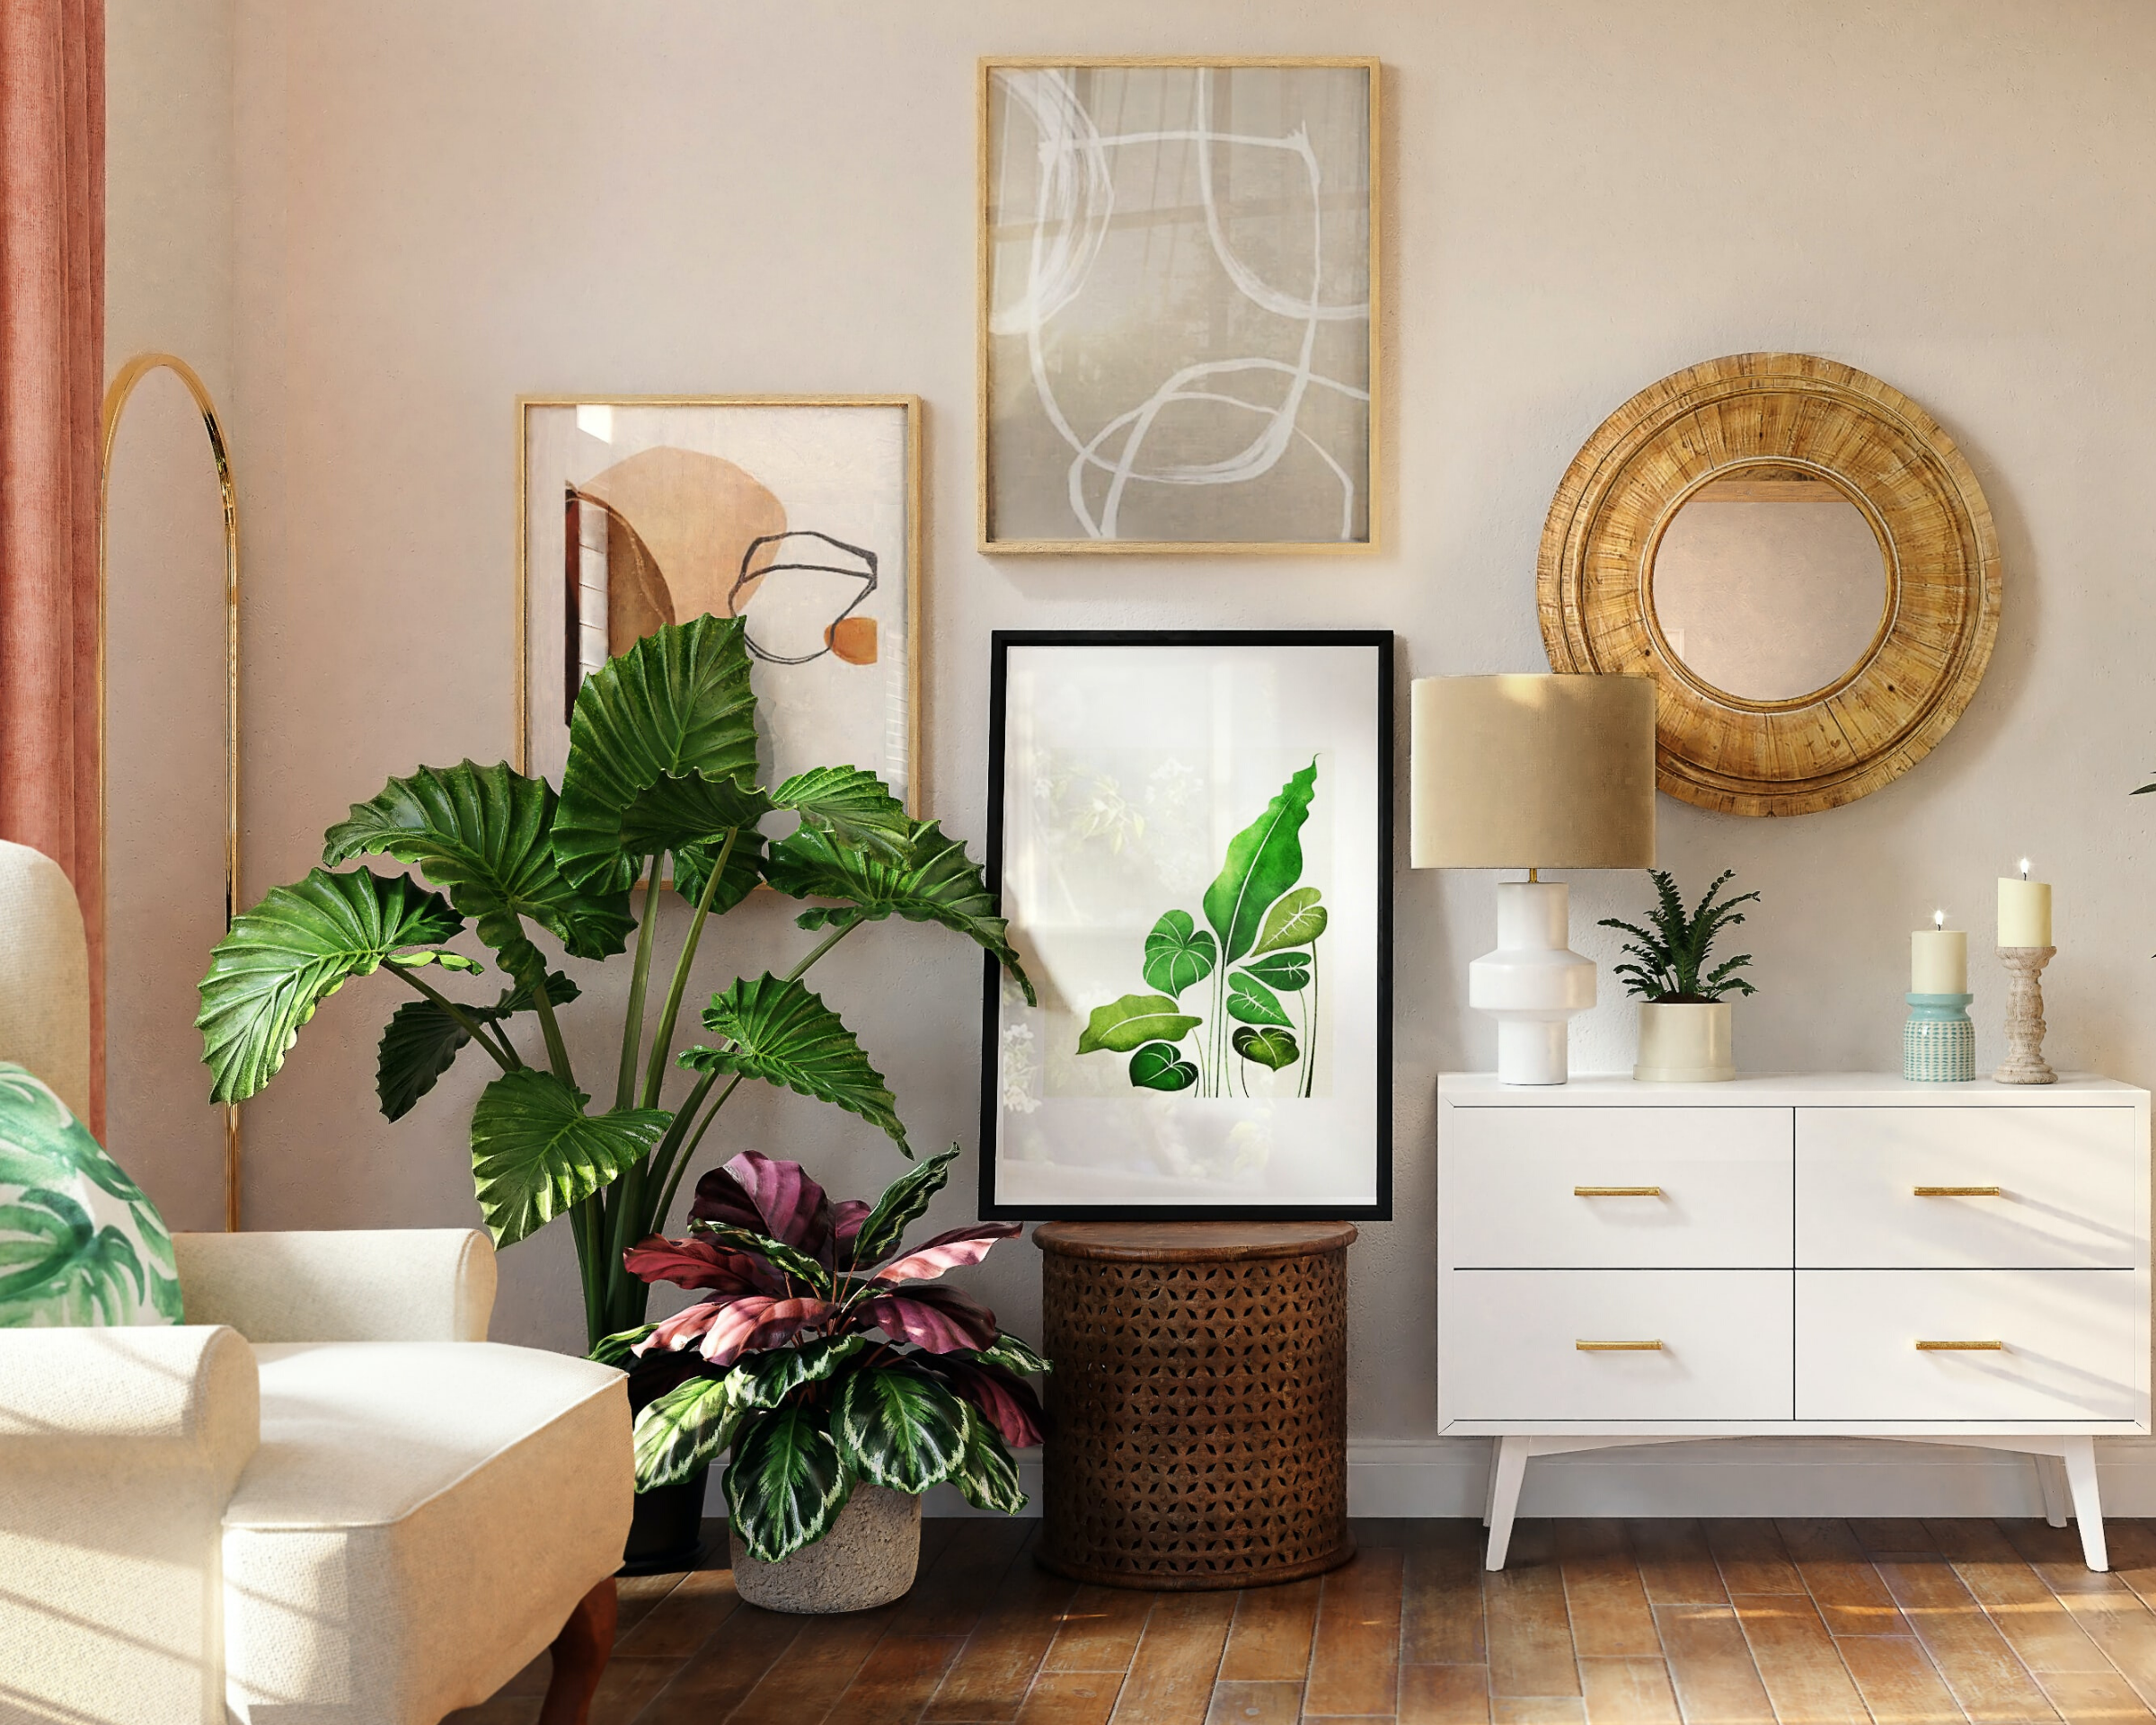 Spring Decor Ideas: Simple Tweaks for a Fresh Look